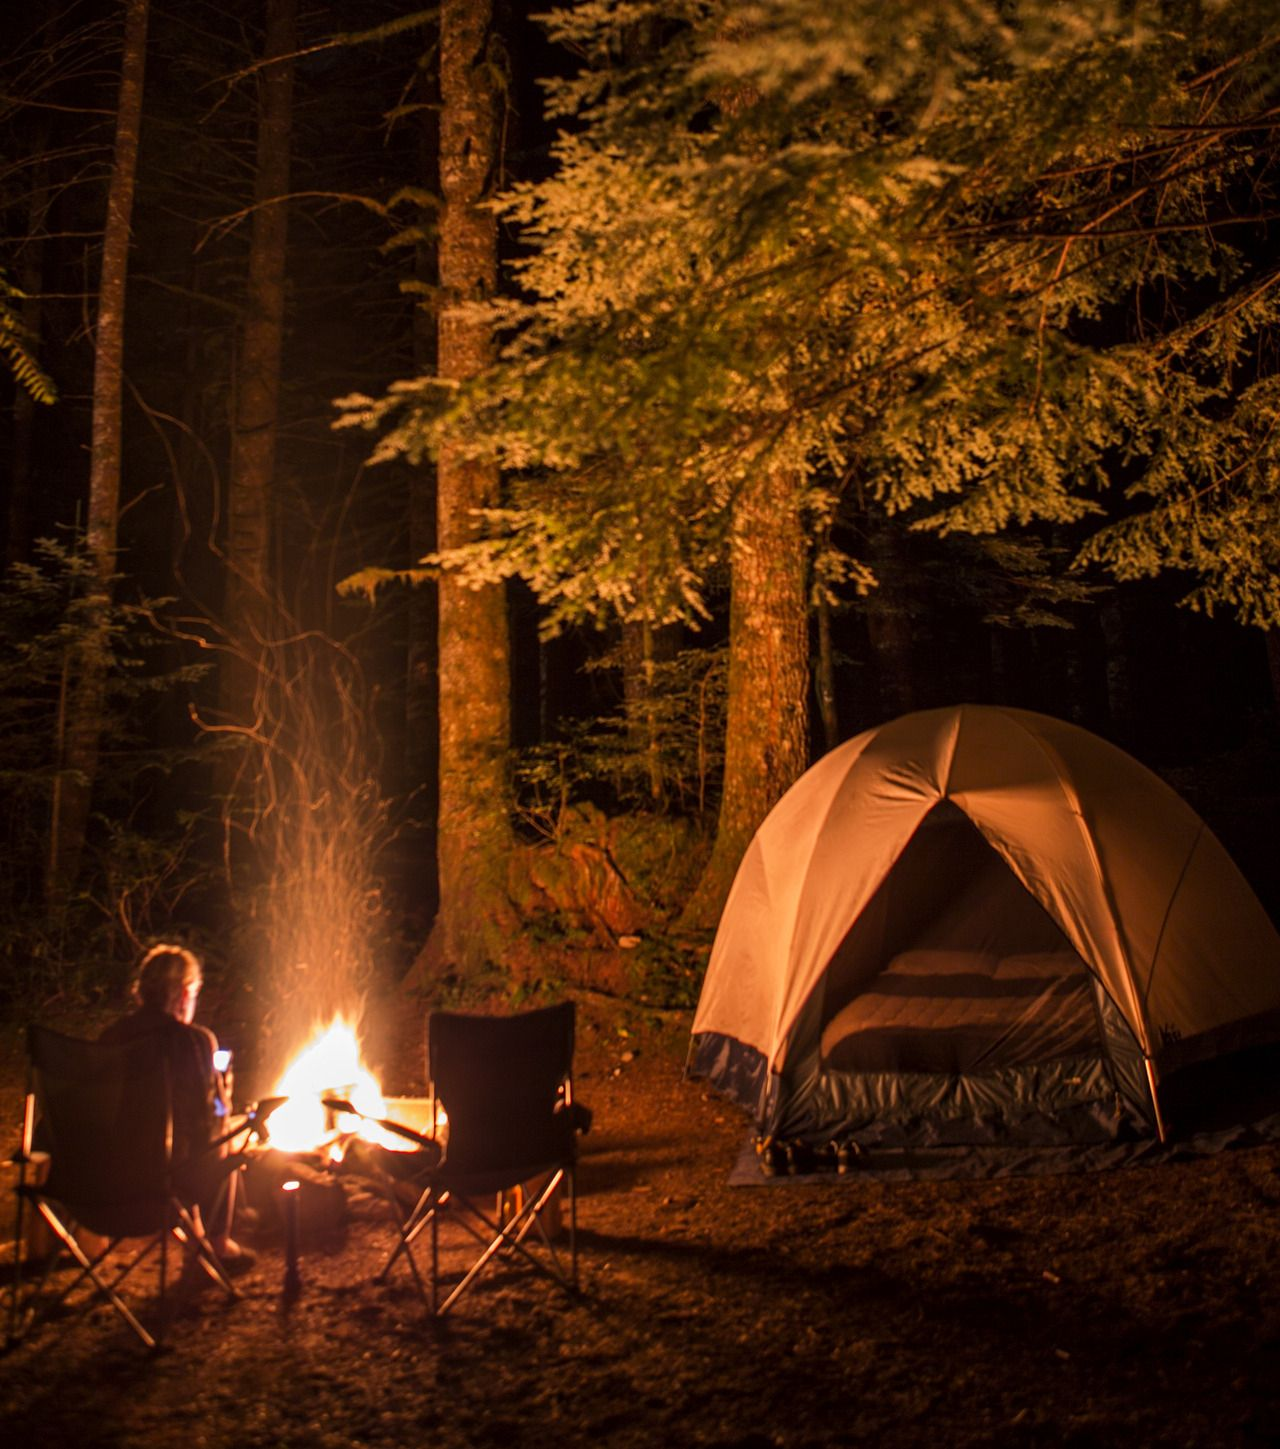 Camping in the woods with a fire